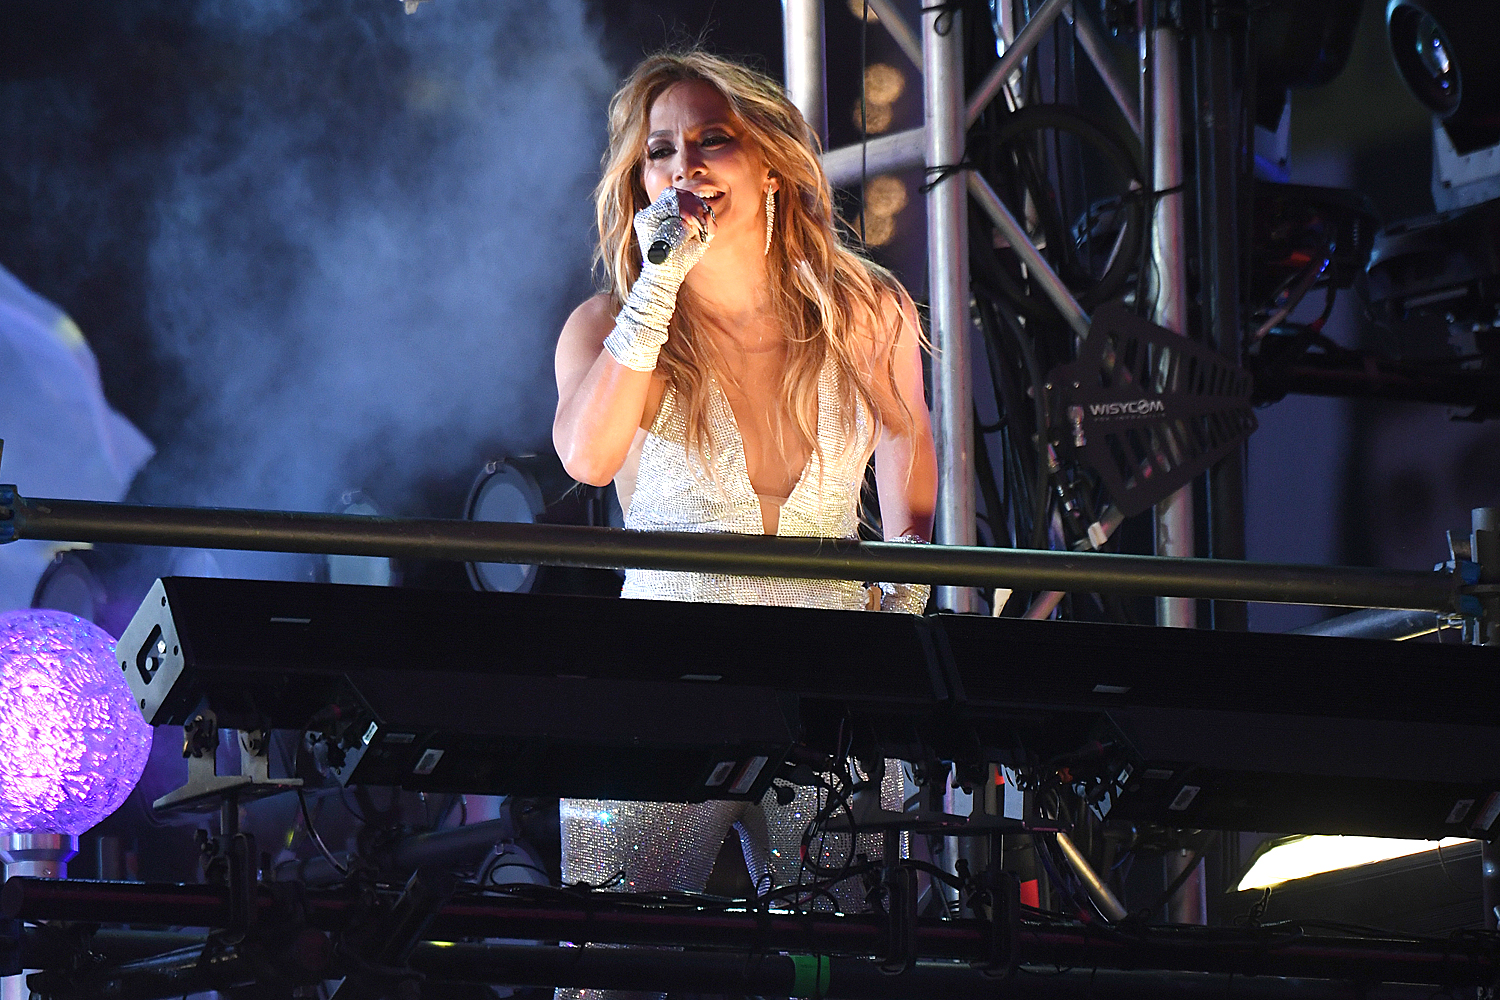 Jennifer Lopez performs live in Times Square during 2021 New Year's Eve celebrations